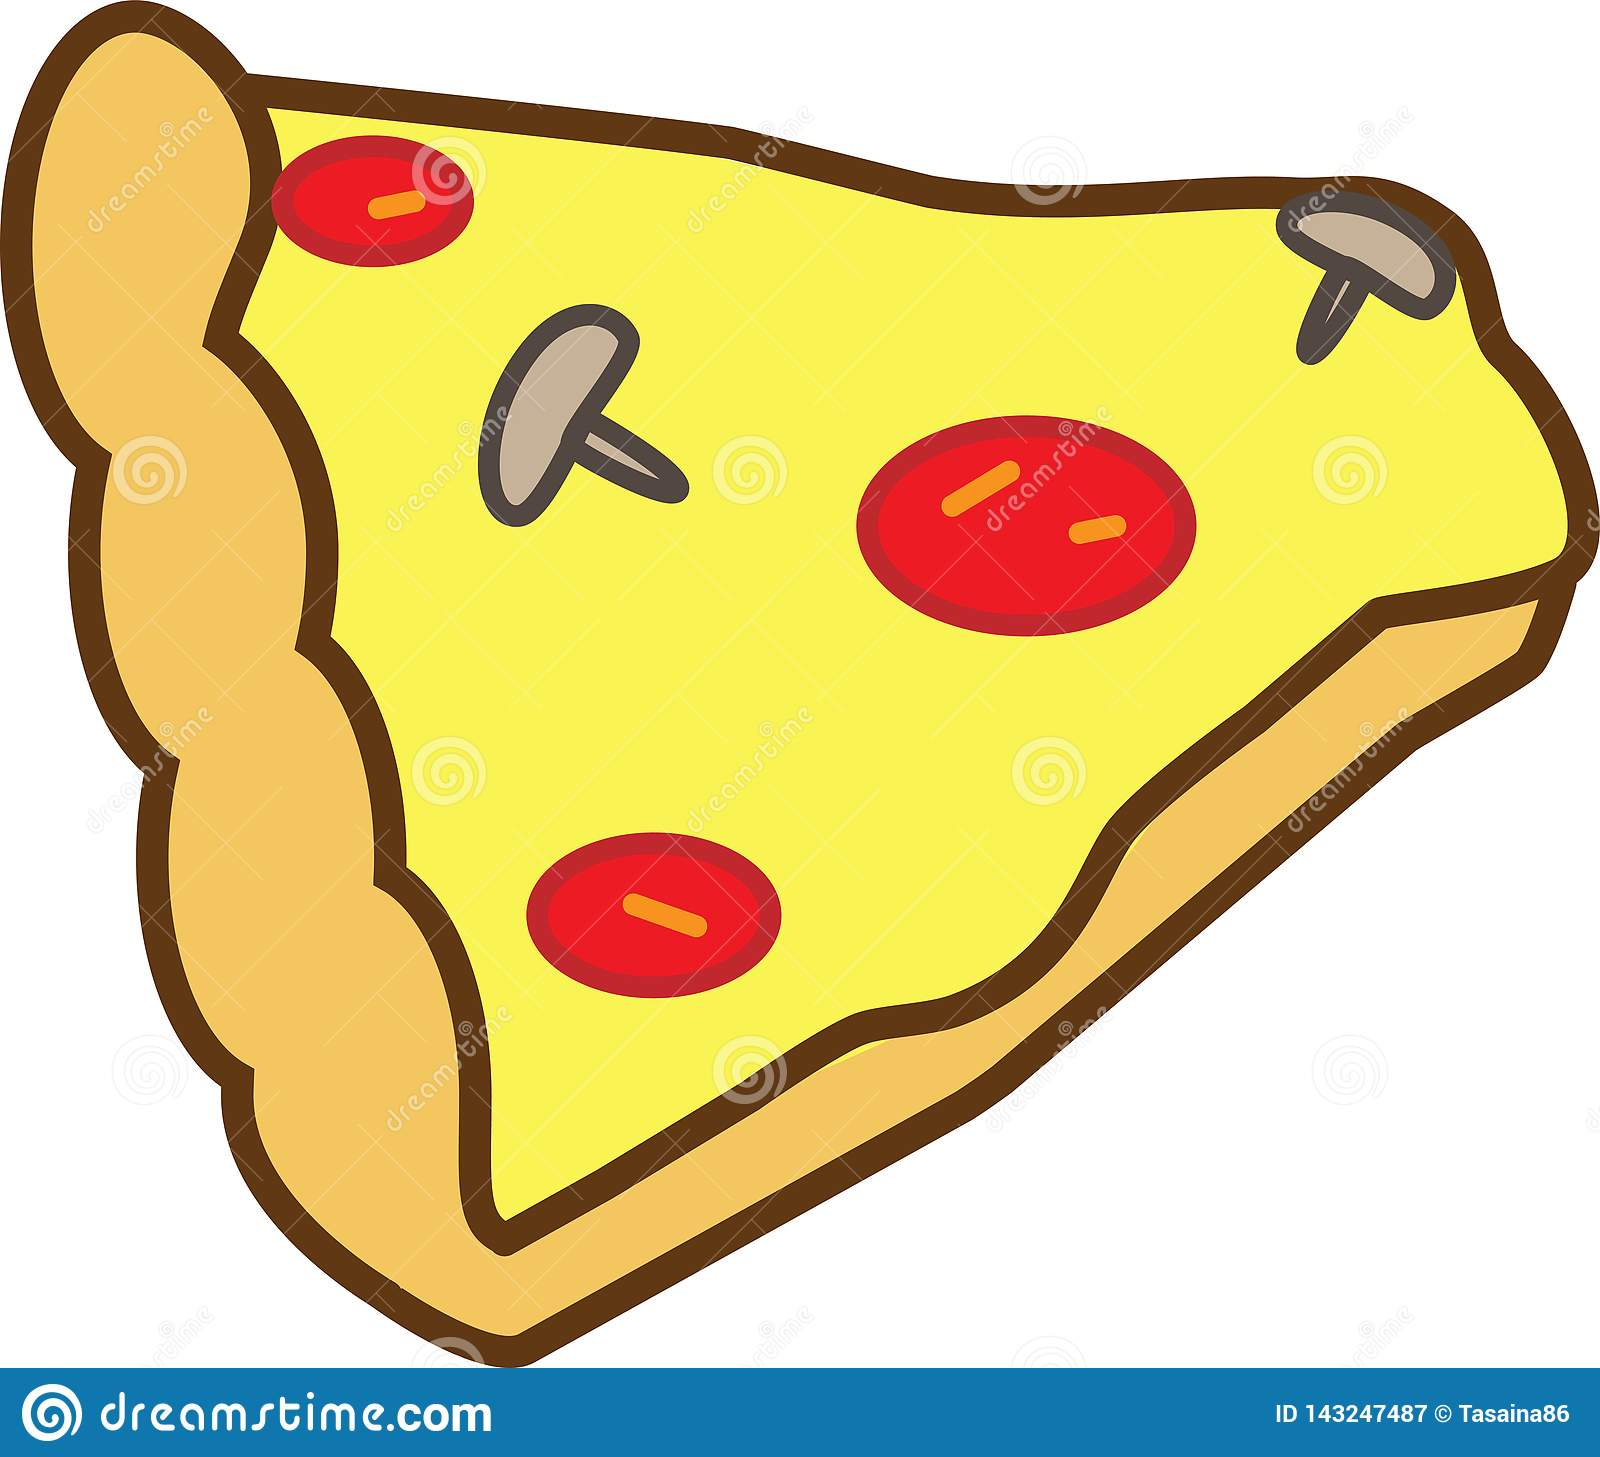 The colored icon is not a whole slice of pizza with mushrooms, tomatoes and cheese